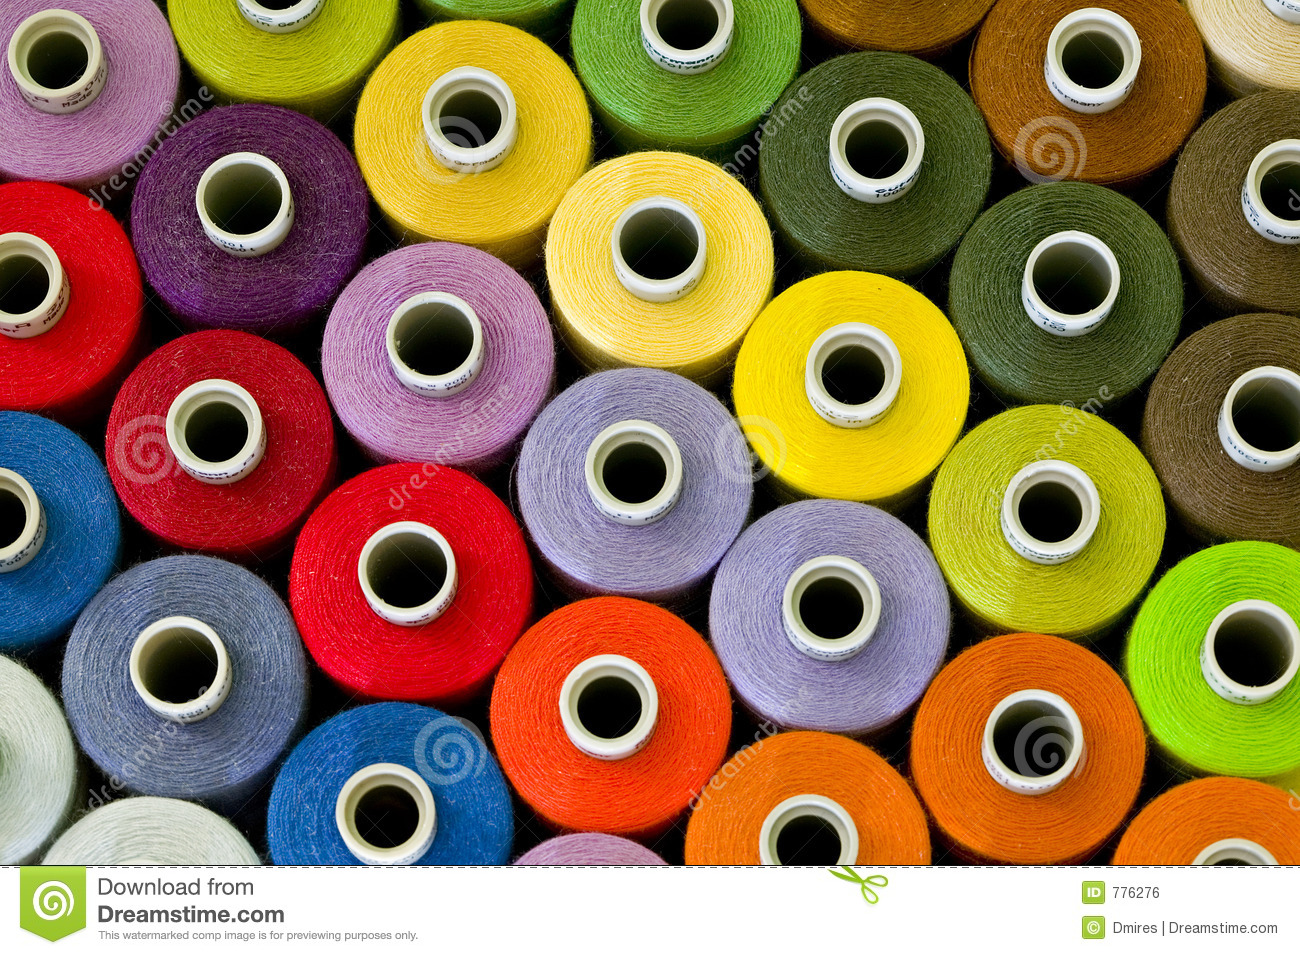 Sewing Thread Pattern Royalty Free Stock Image - Image: 776276